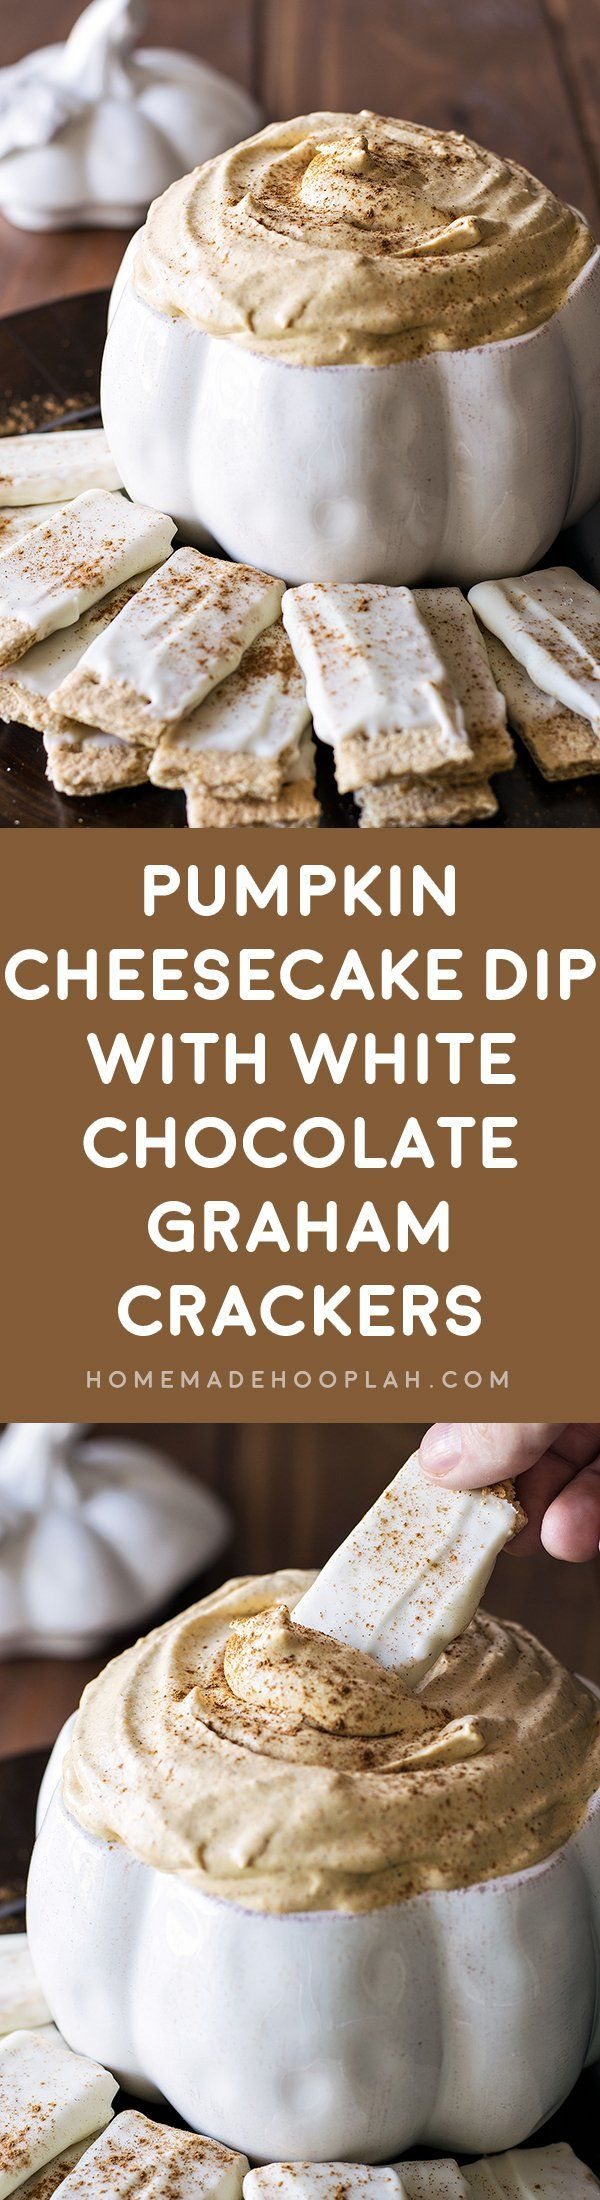 Pumpkin Cheesecake Dip with White Chocolate Graham Crackers! Appease your…